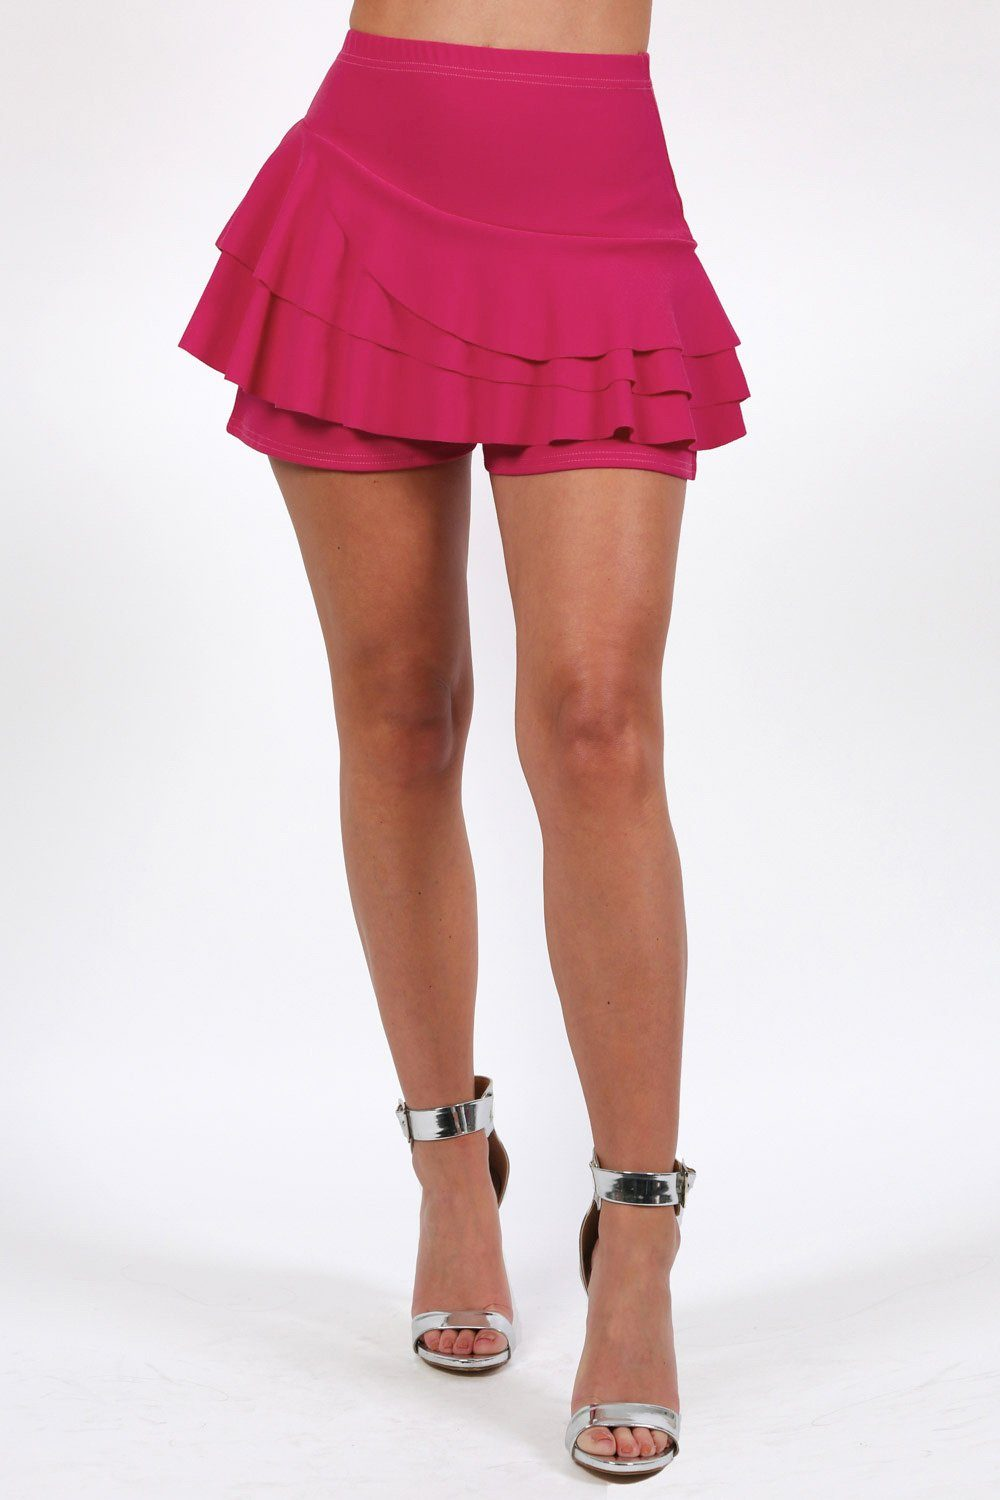 Shorts - Multi Layer Plain Frill Skort In Magenta Pink